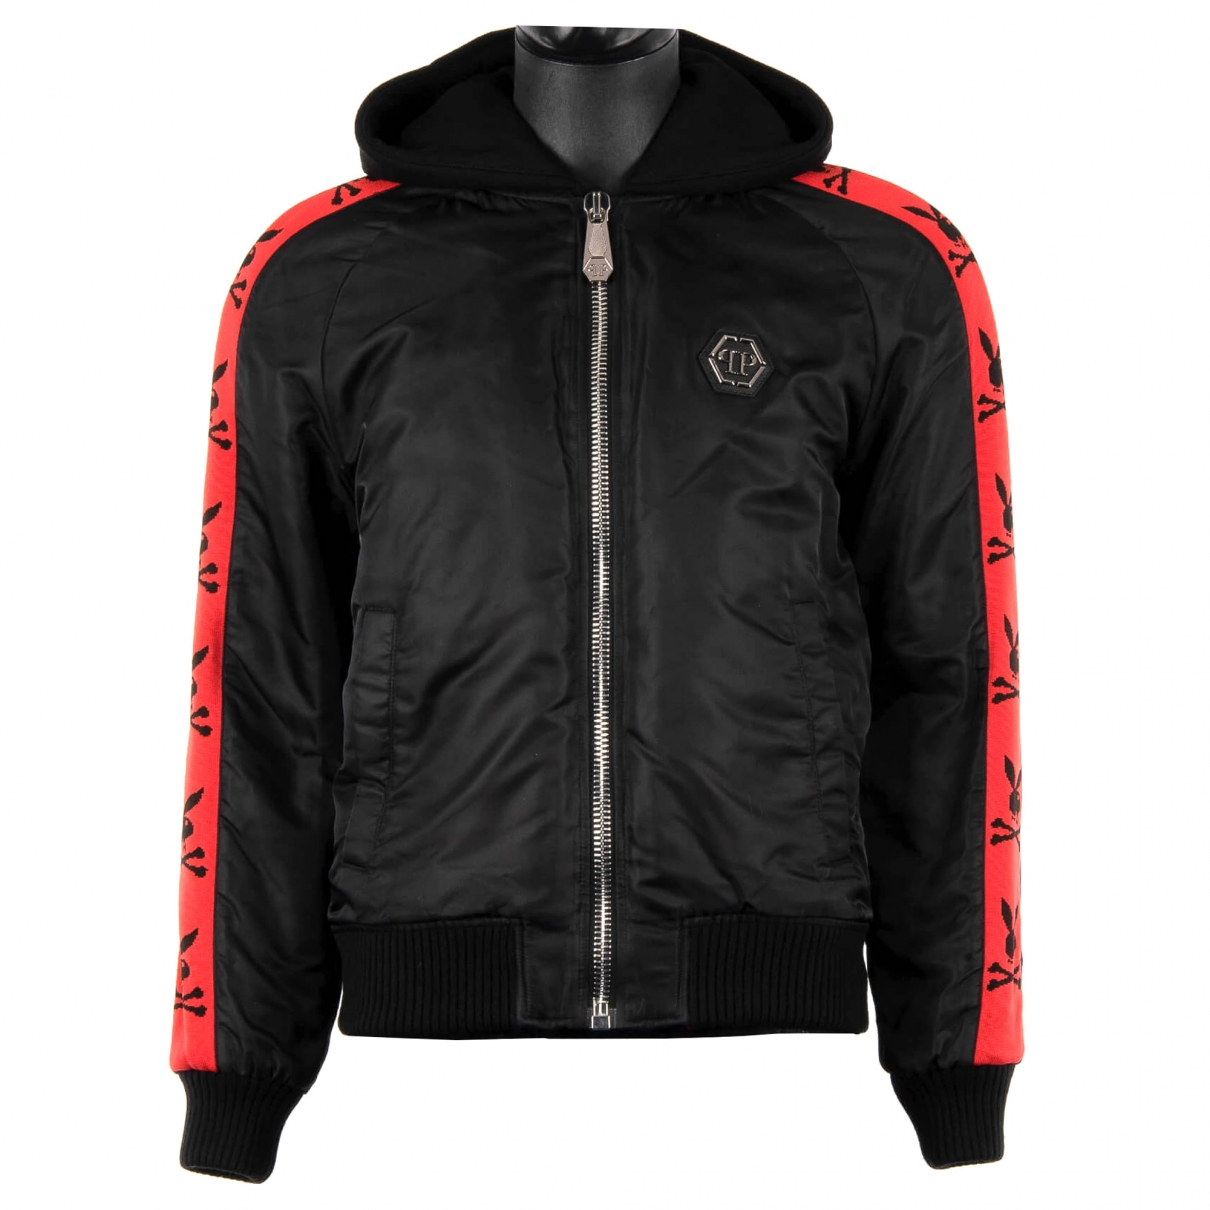 Philipp Plein \N Black jacket  for Men M International